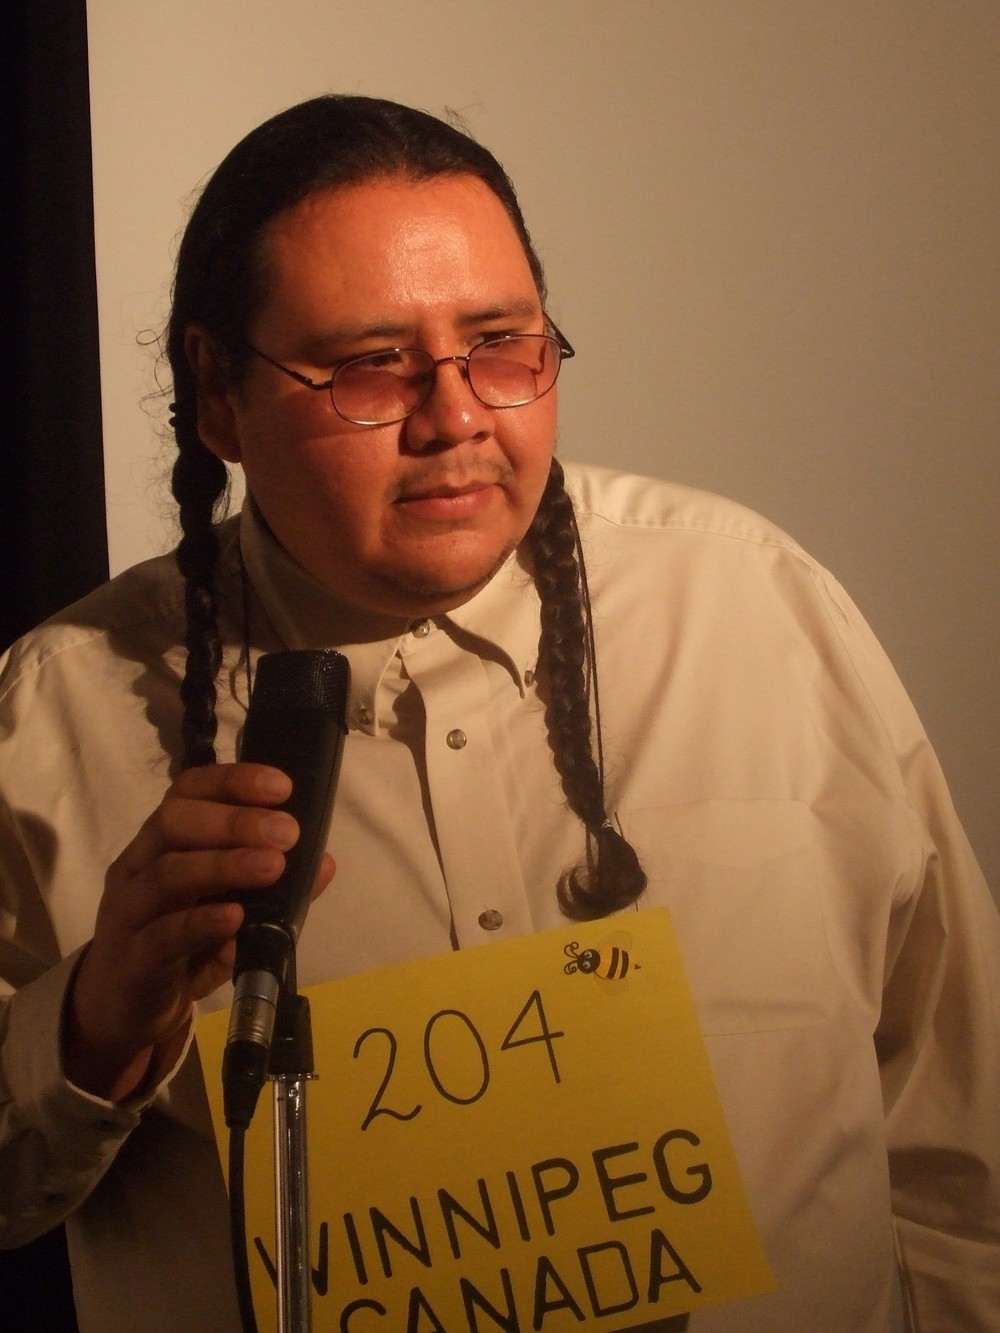 Indian Darryl Nepinak, Winnipeg